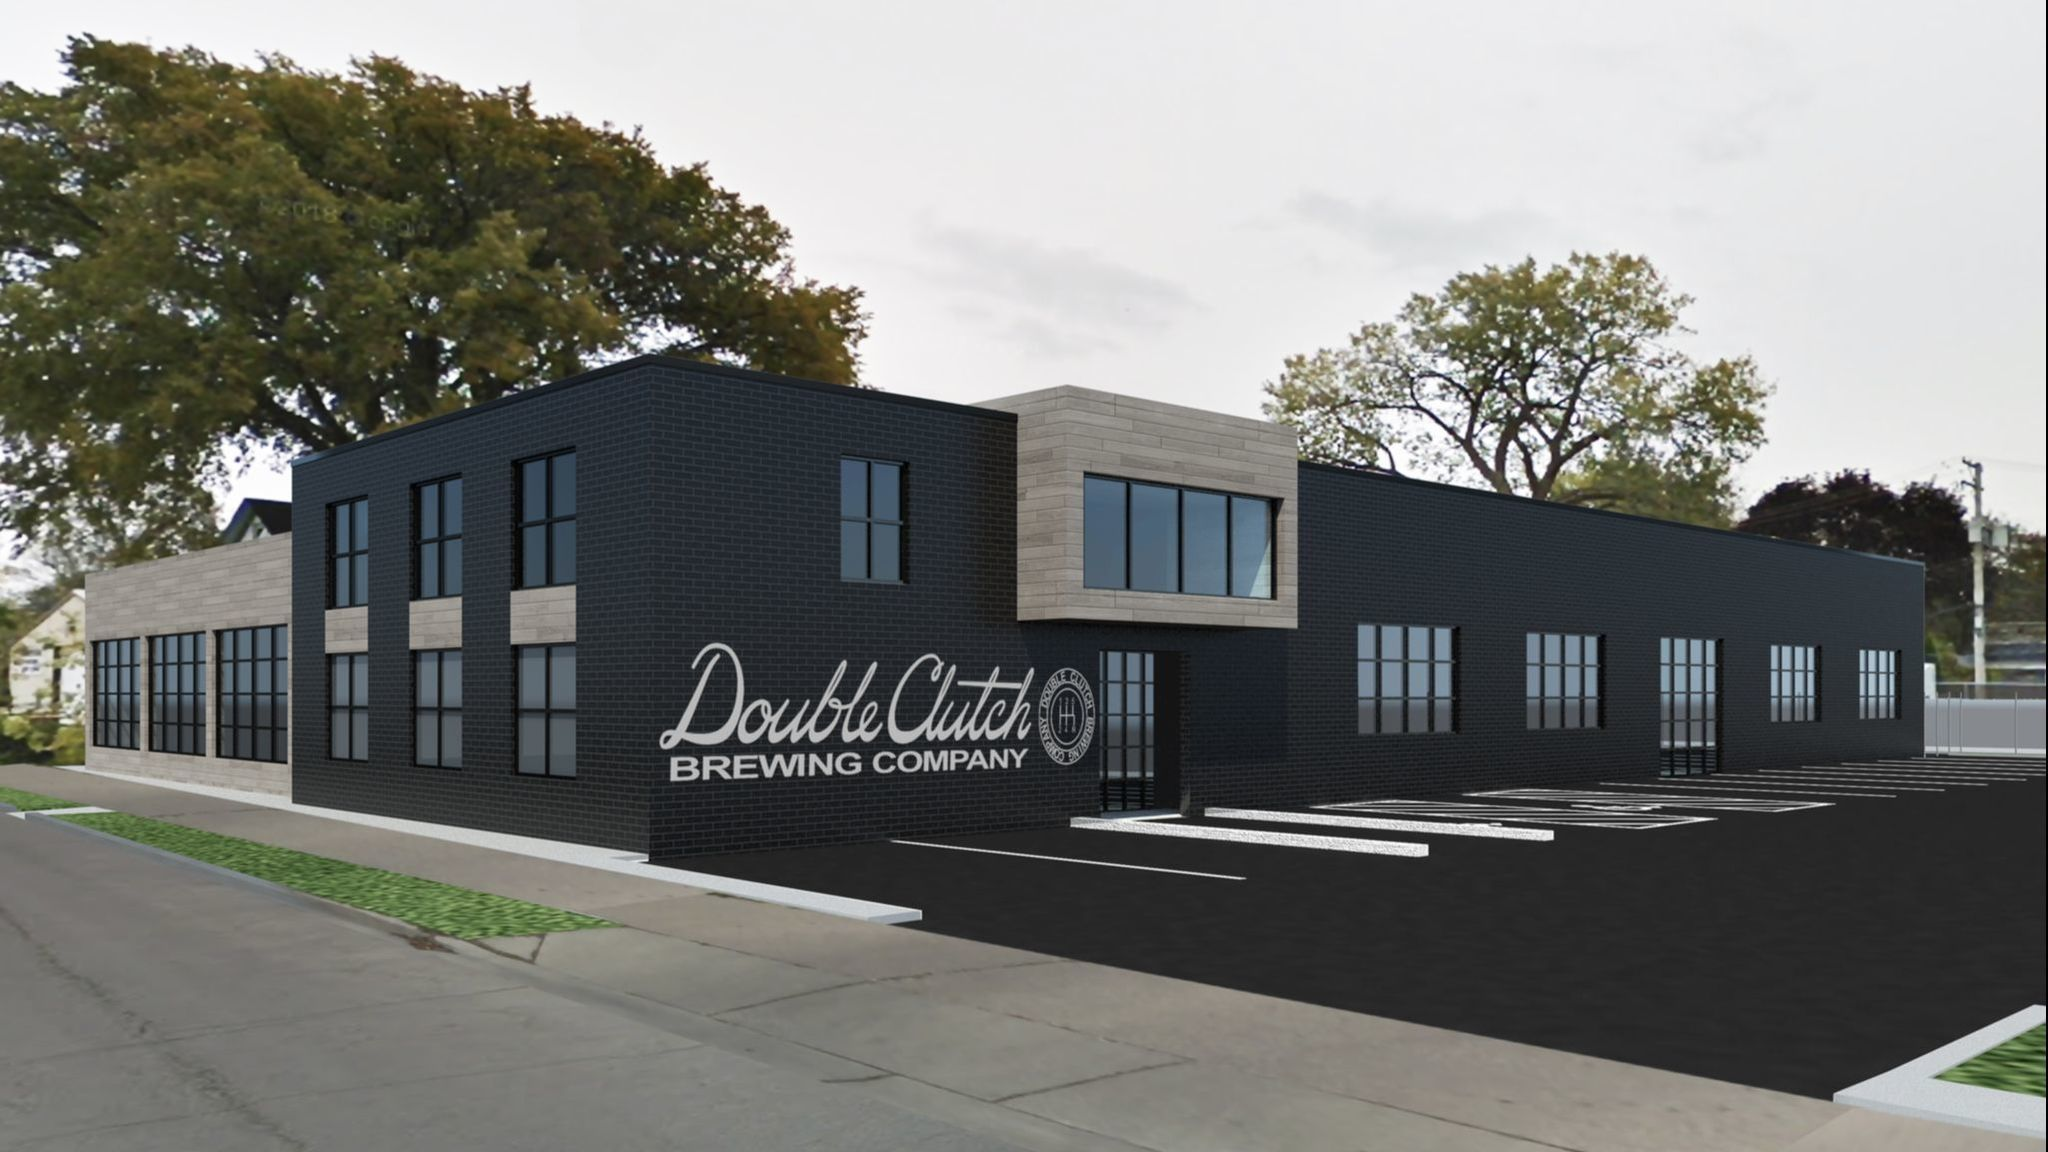 A group of North Shore restaurant owners are planning to open a brewpub next year in Evanston